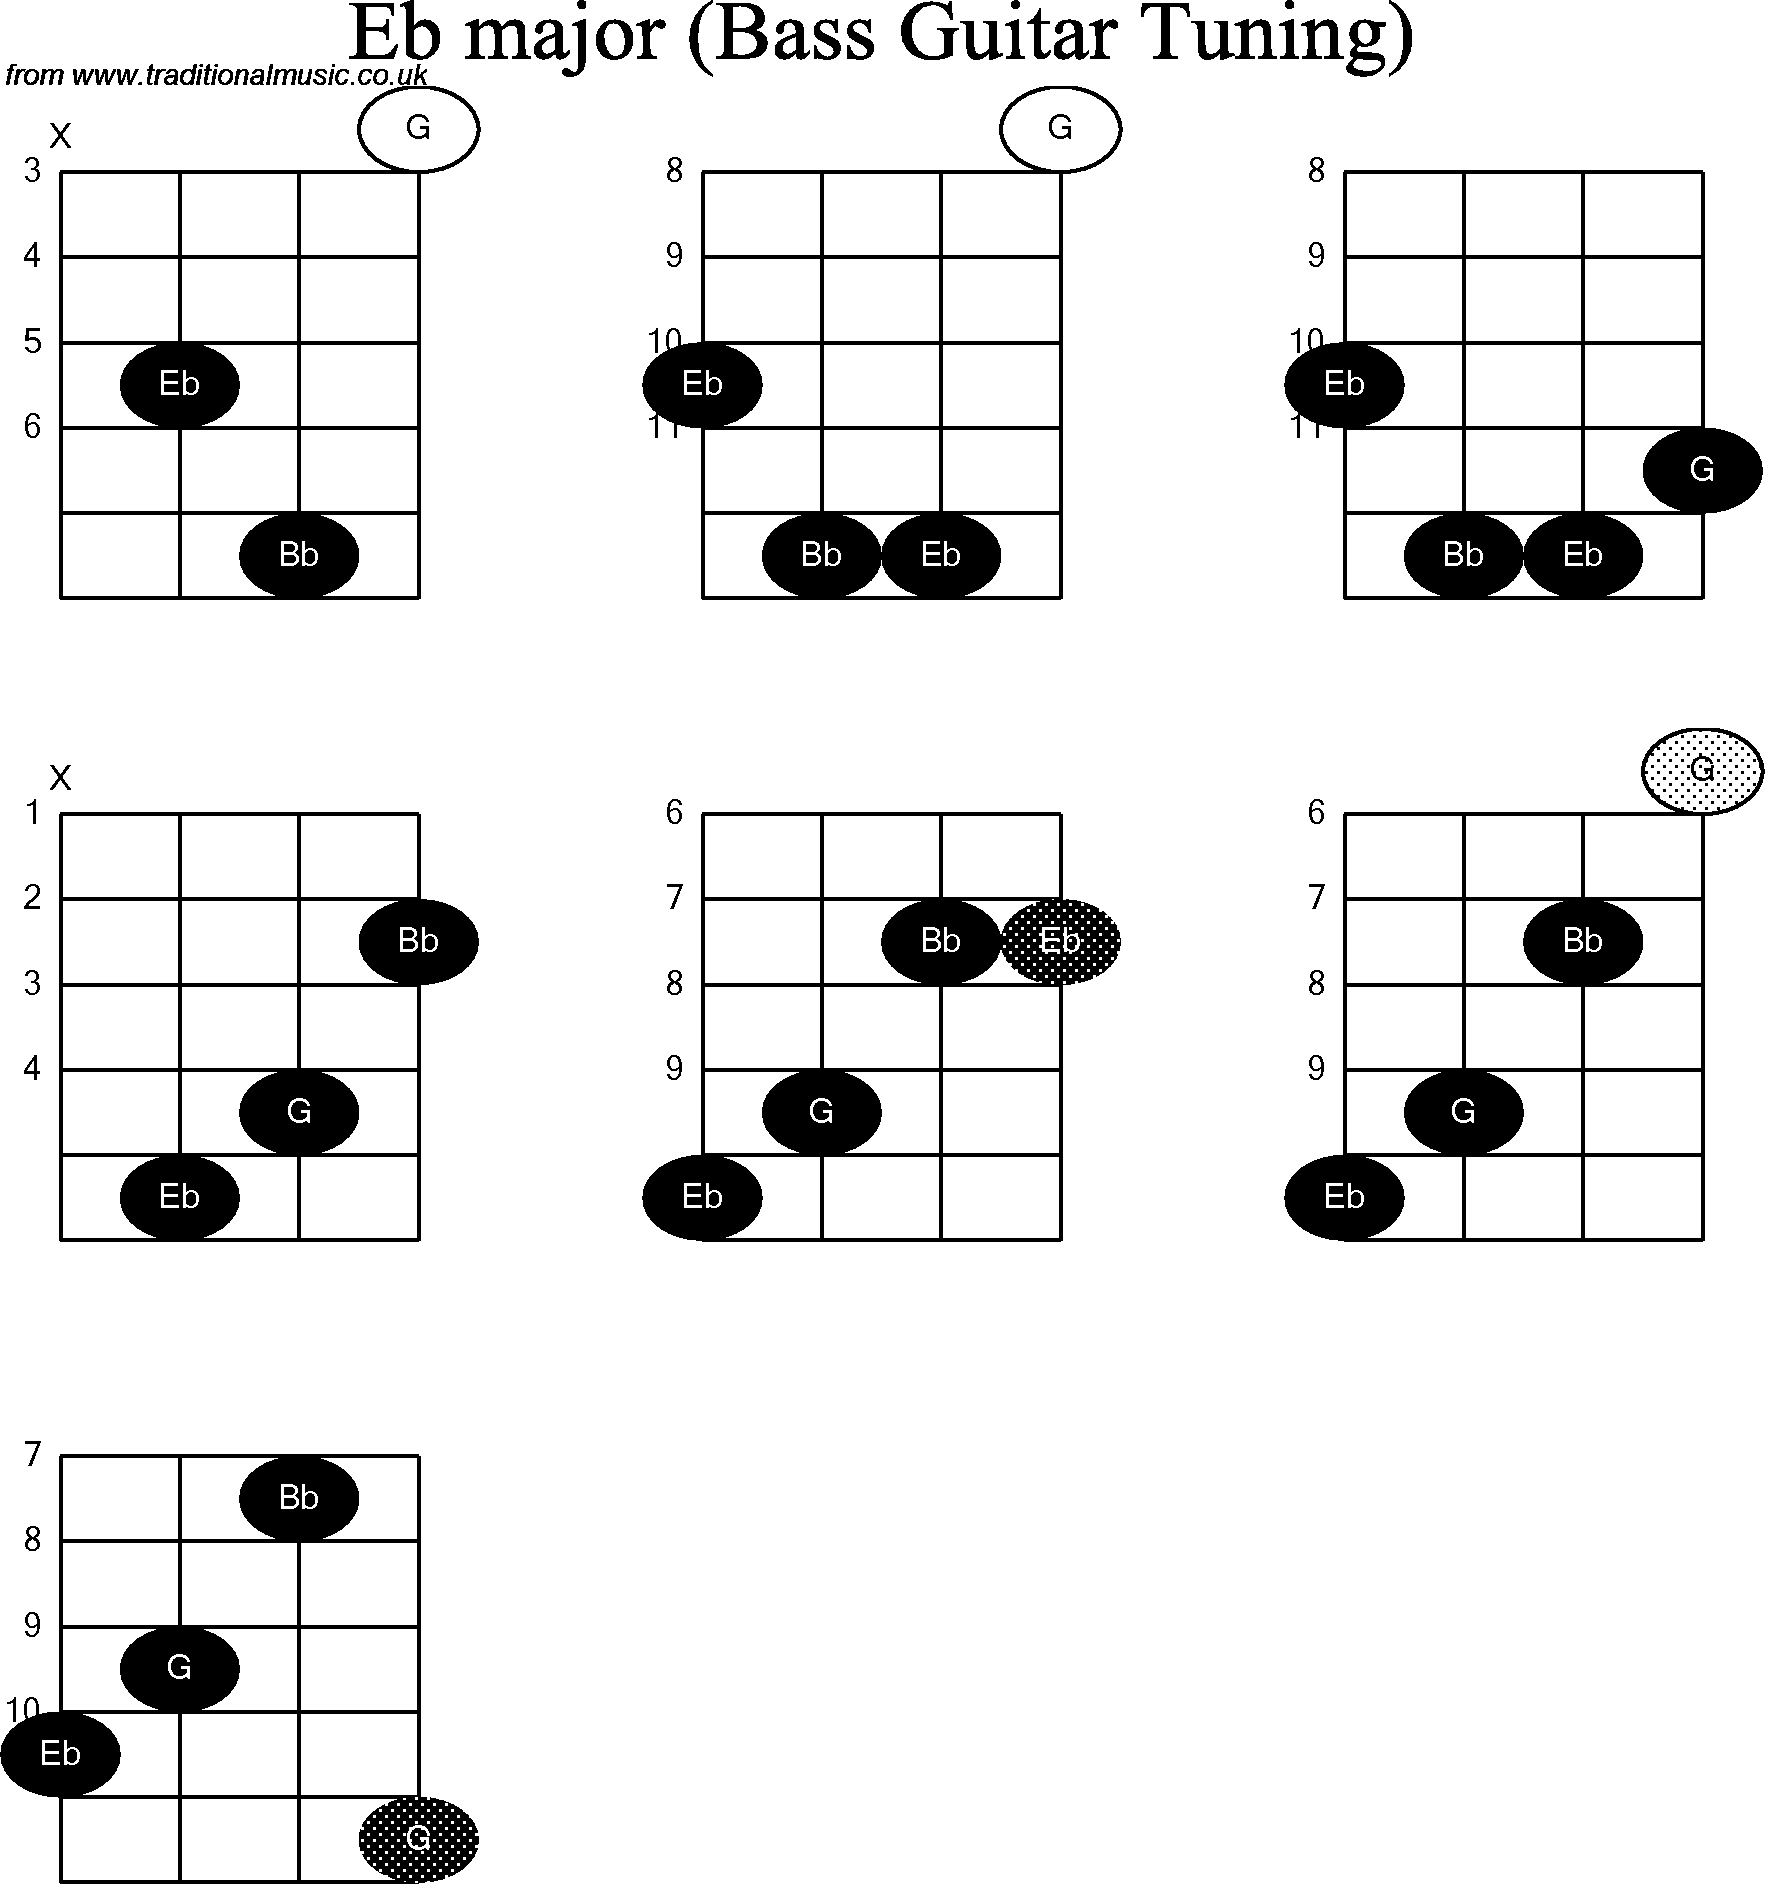 Bass Guitar Chords Bass Guitar Chord Diagrams For Eb